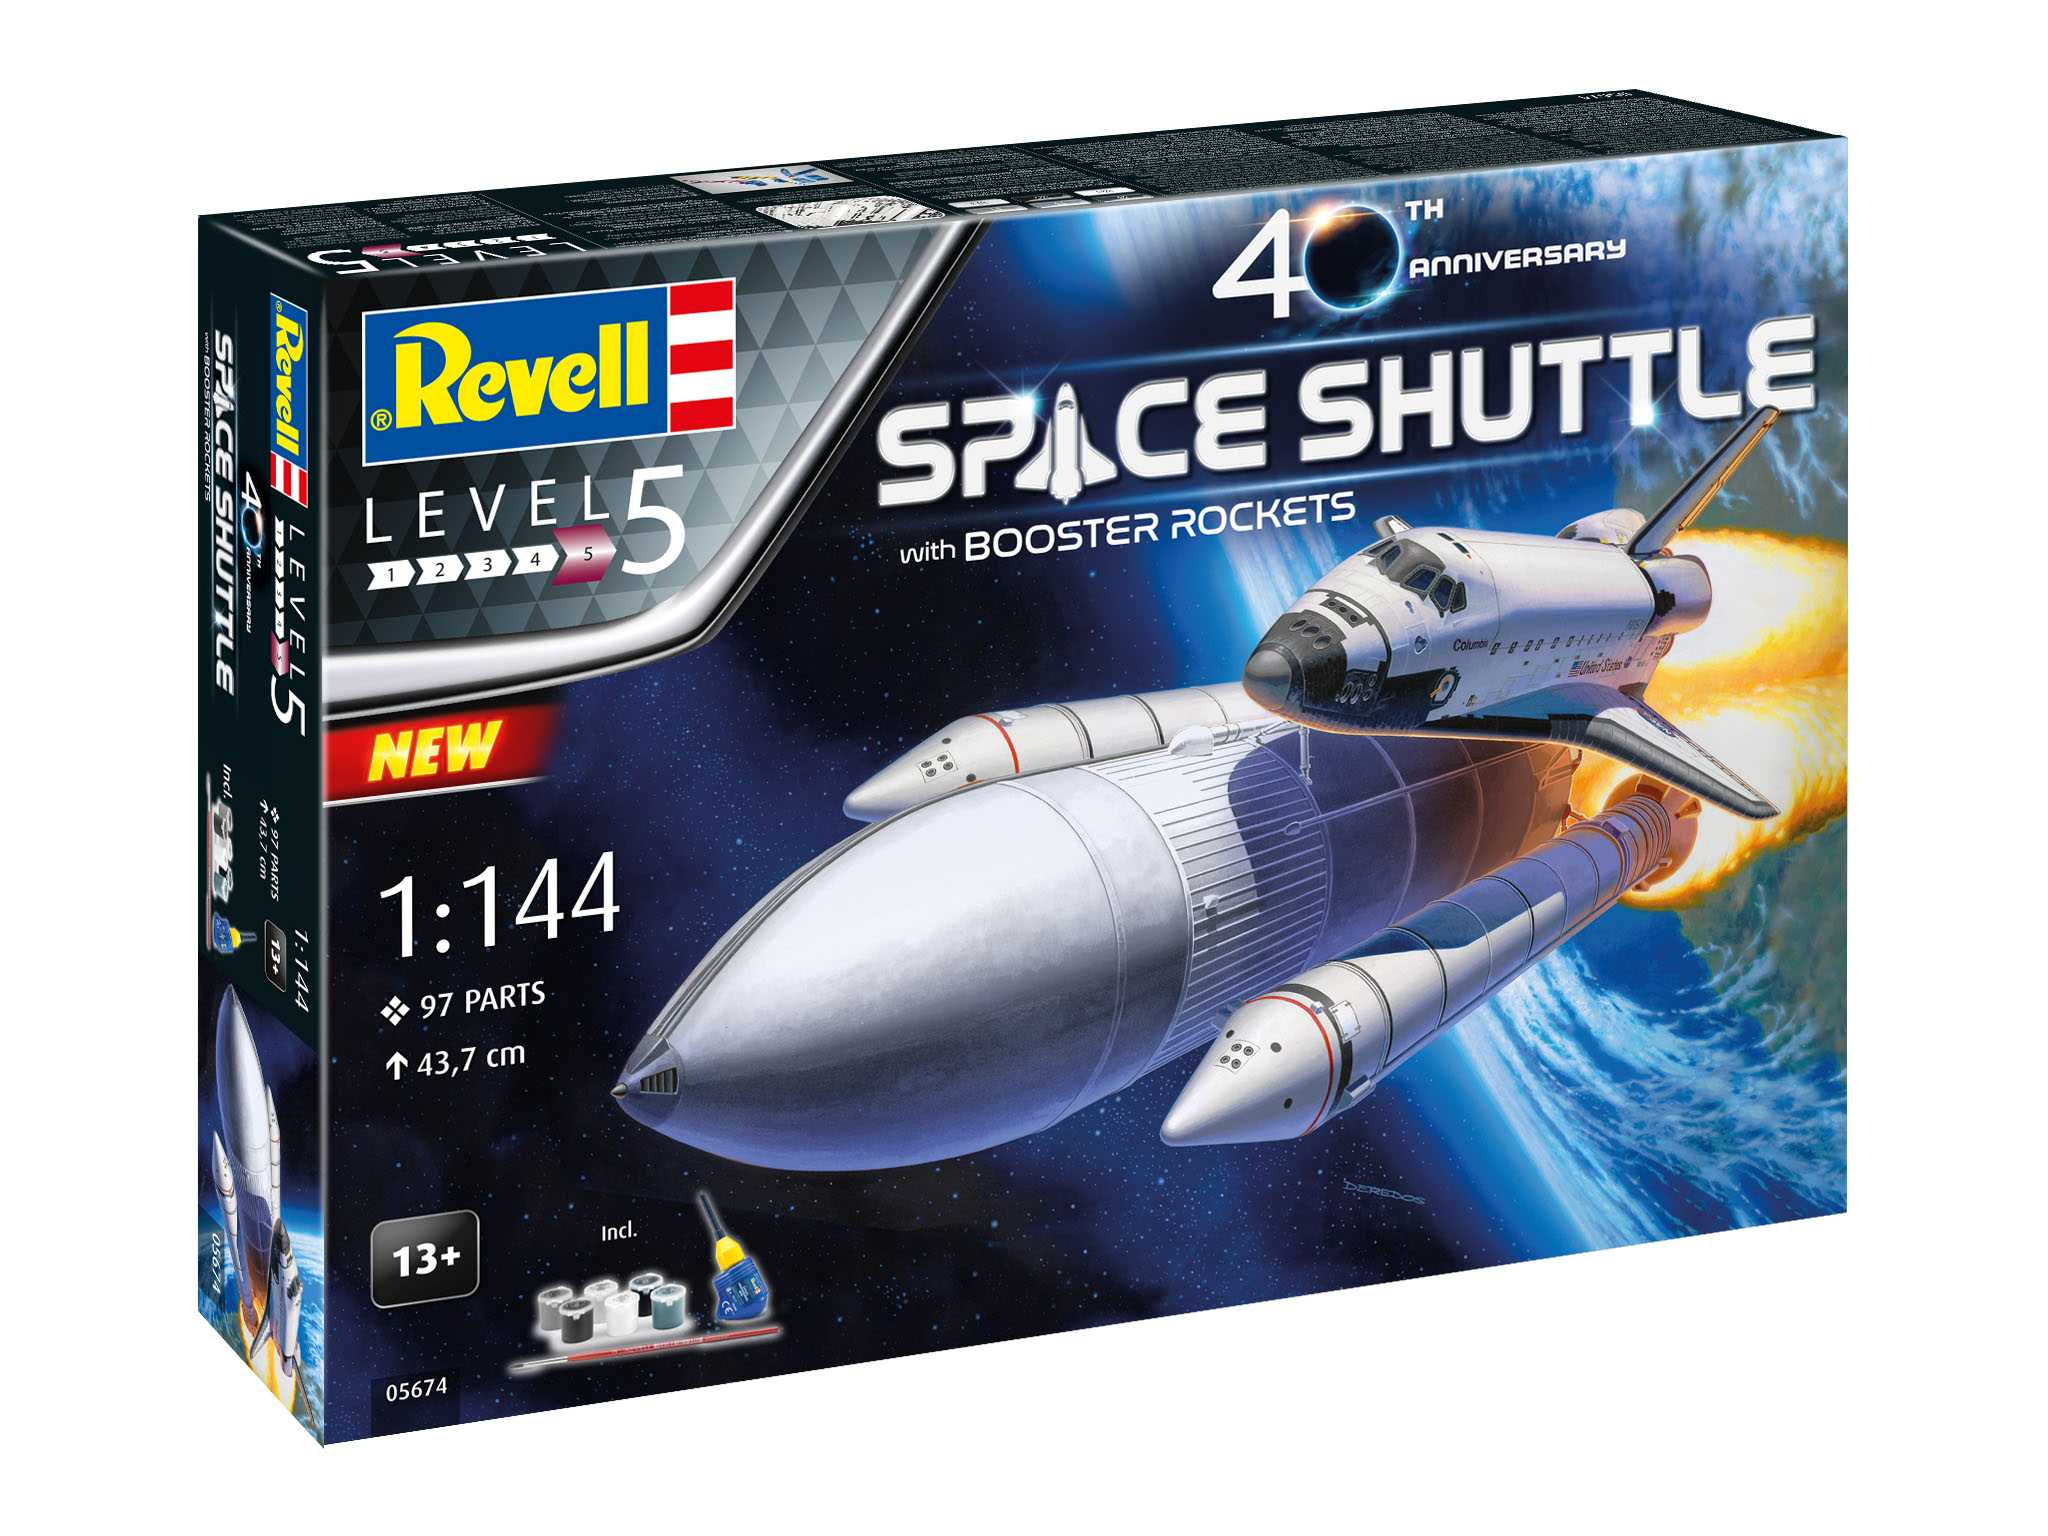 REVELL 1/144 40th Anniversary Space Shuttle with Booster Rockets GIFT Set - zvìtšit obrázek